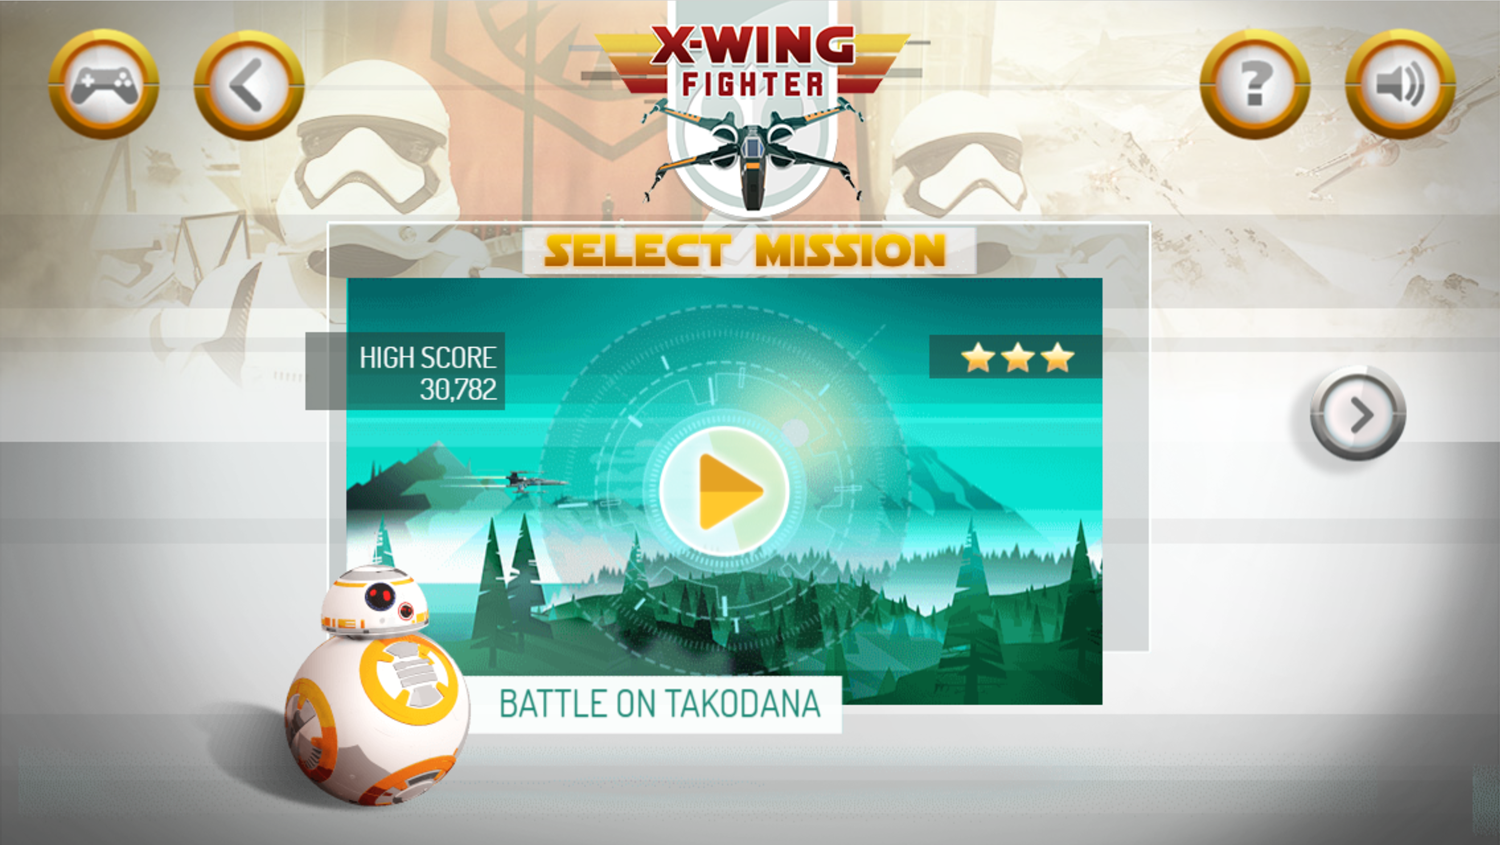 Star Wars X Wing Fighter Level Select Screenshot.